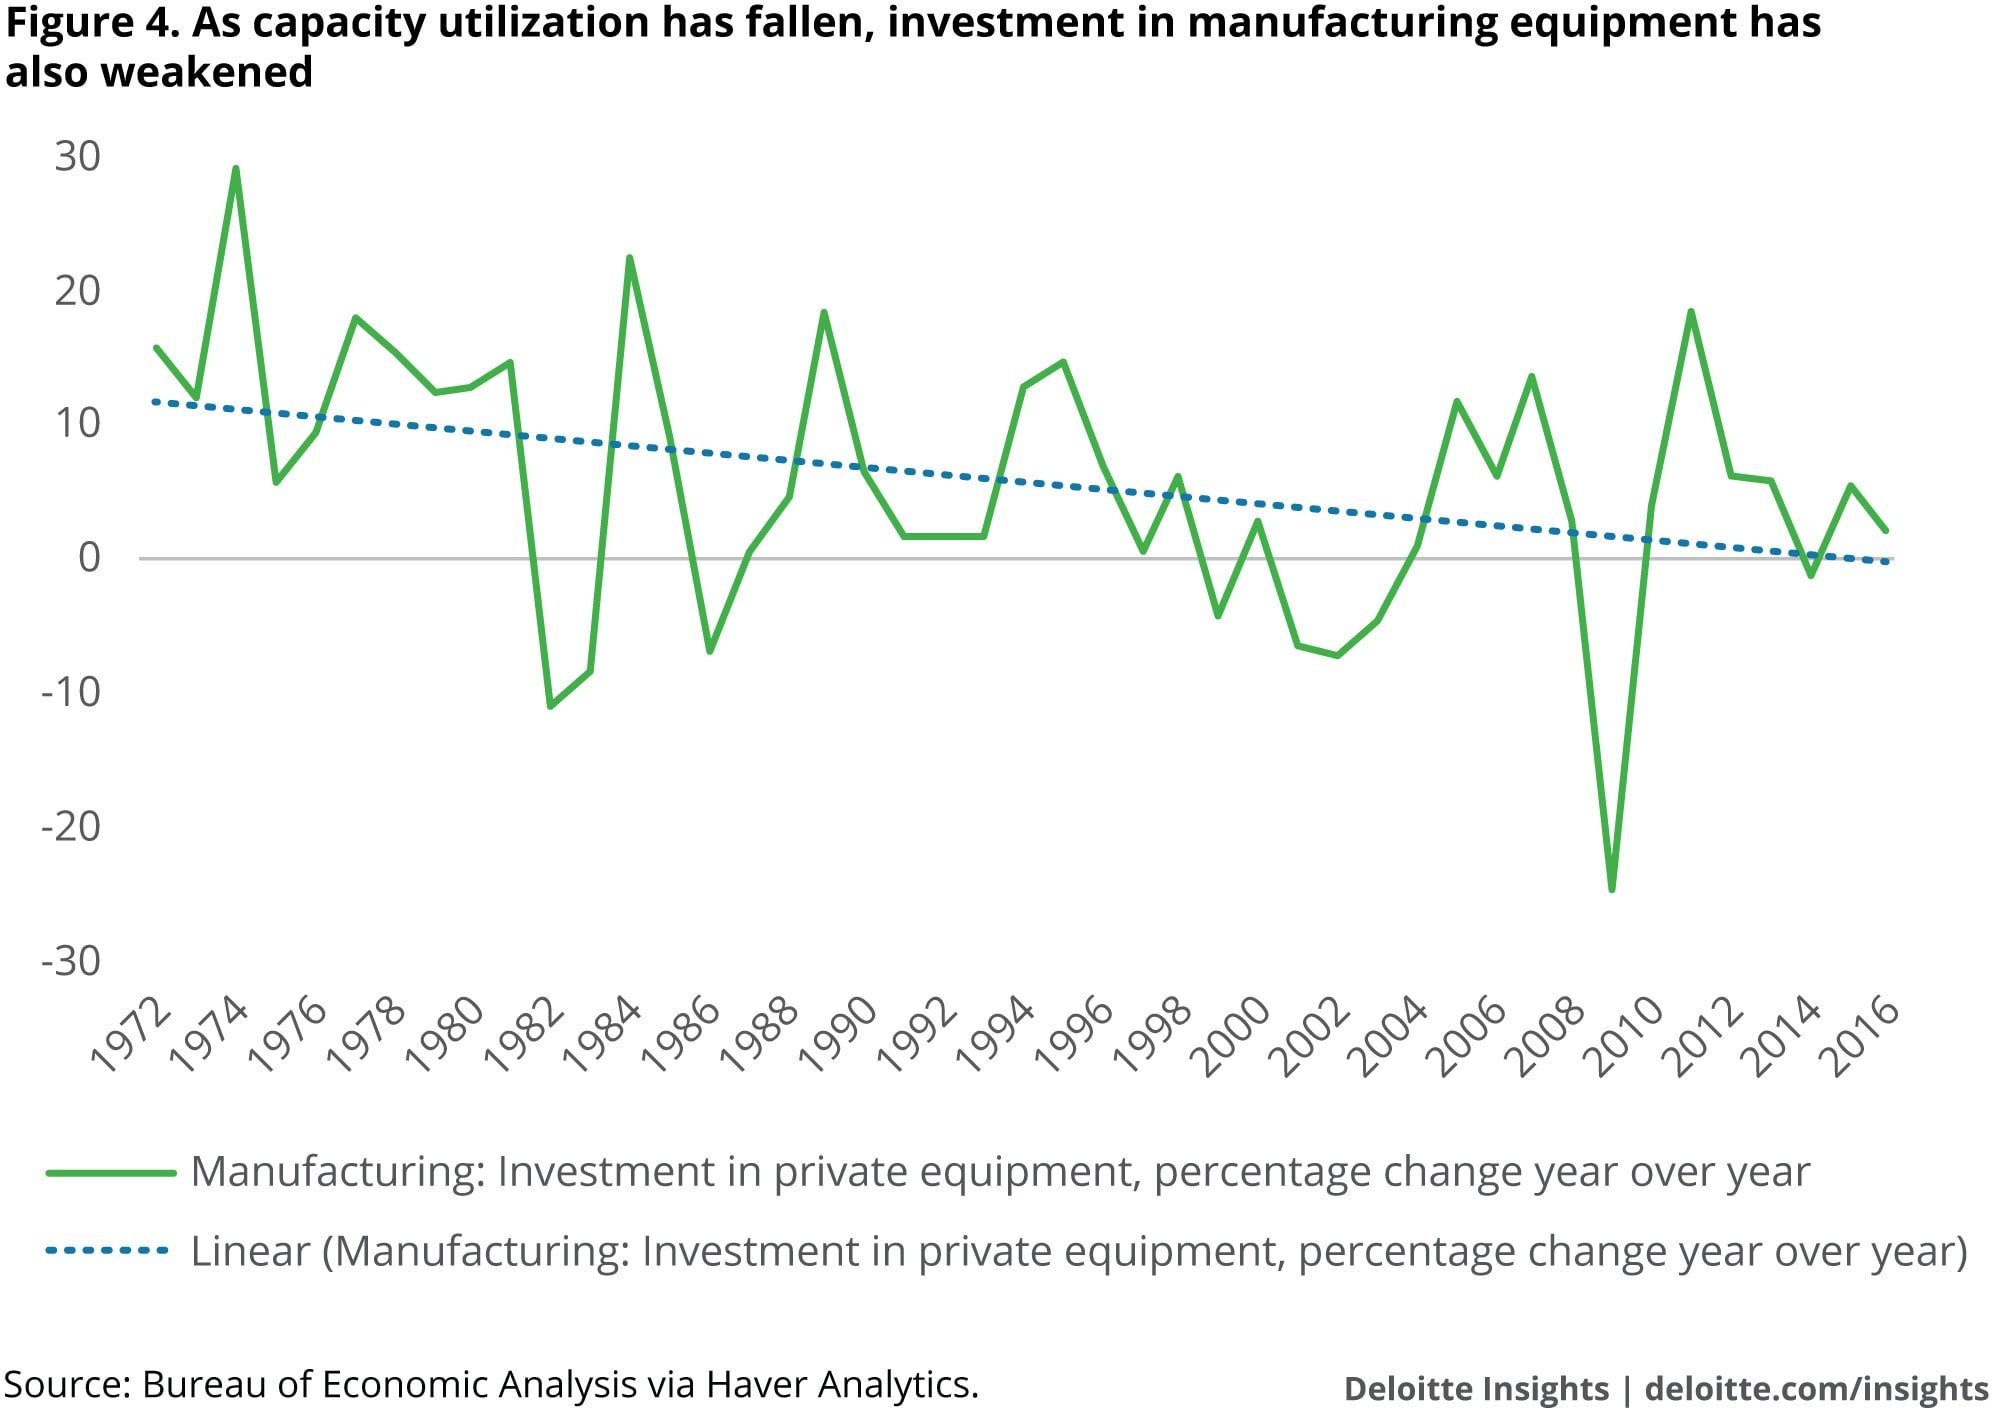 As capacity utilization has fallen, investment in manufacturing equipment has also weakened